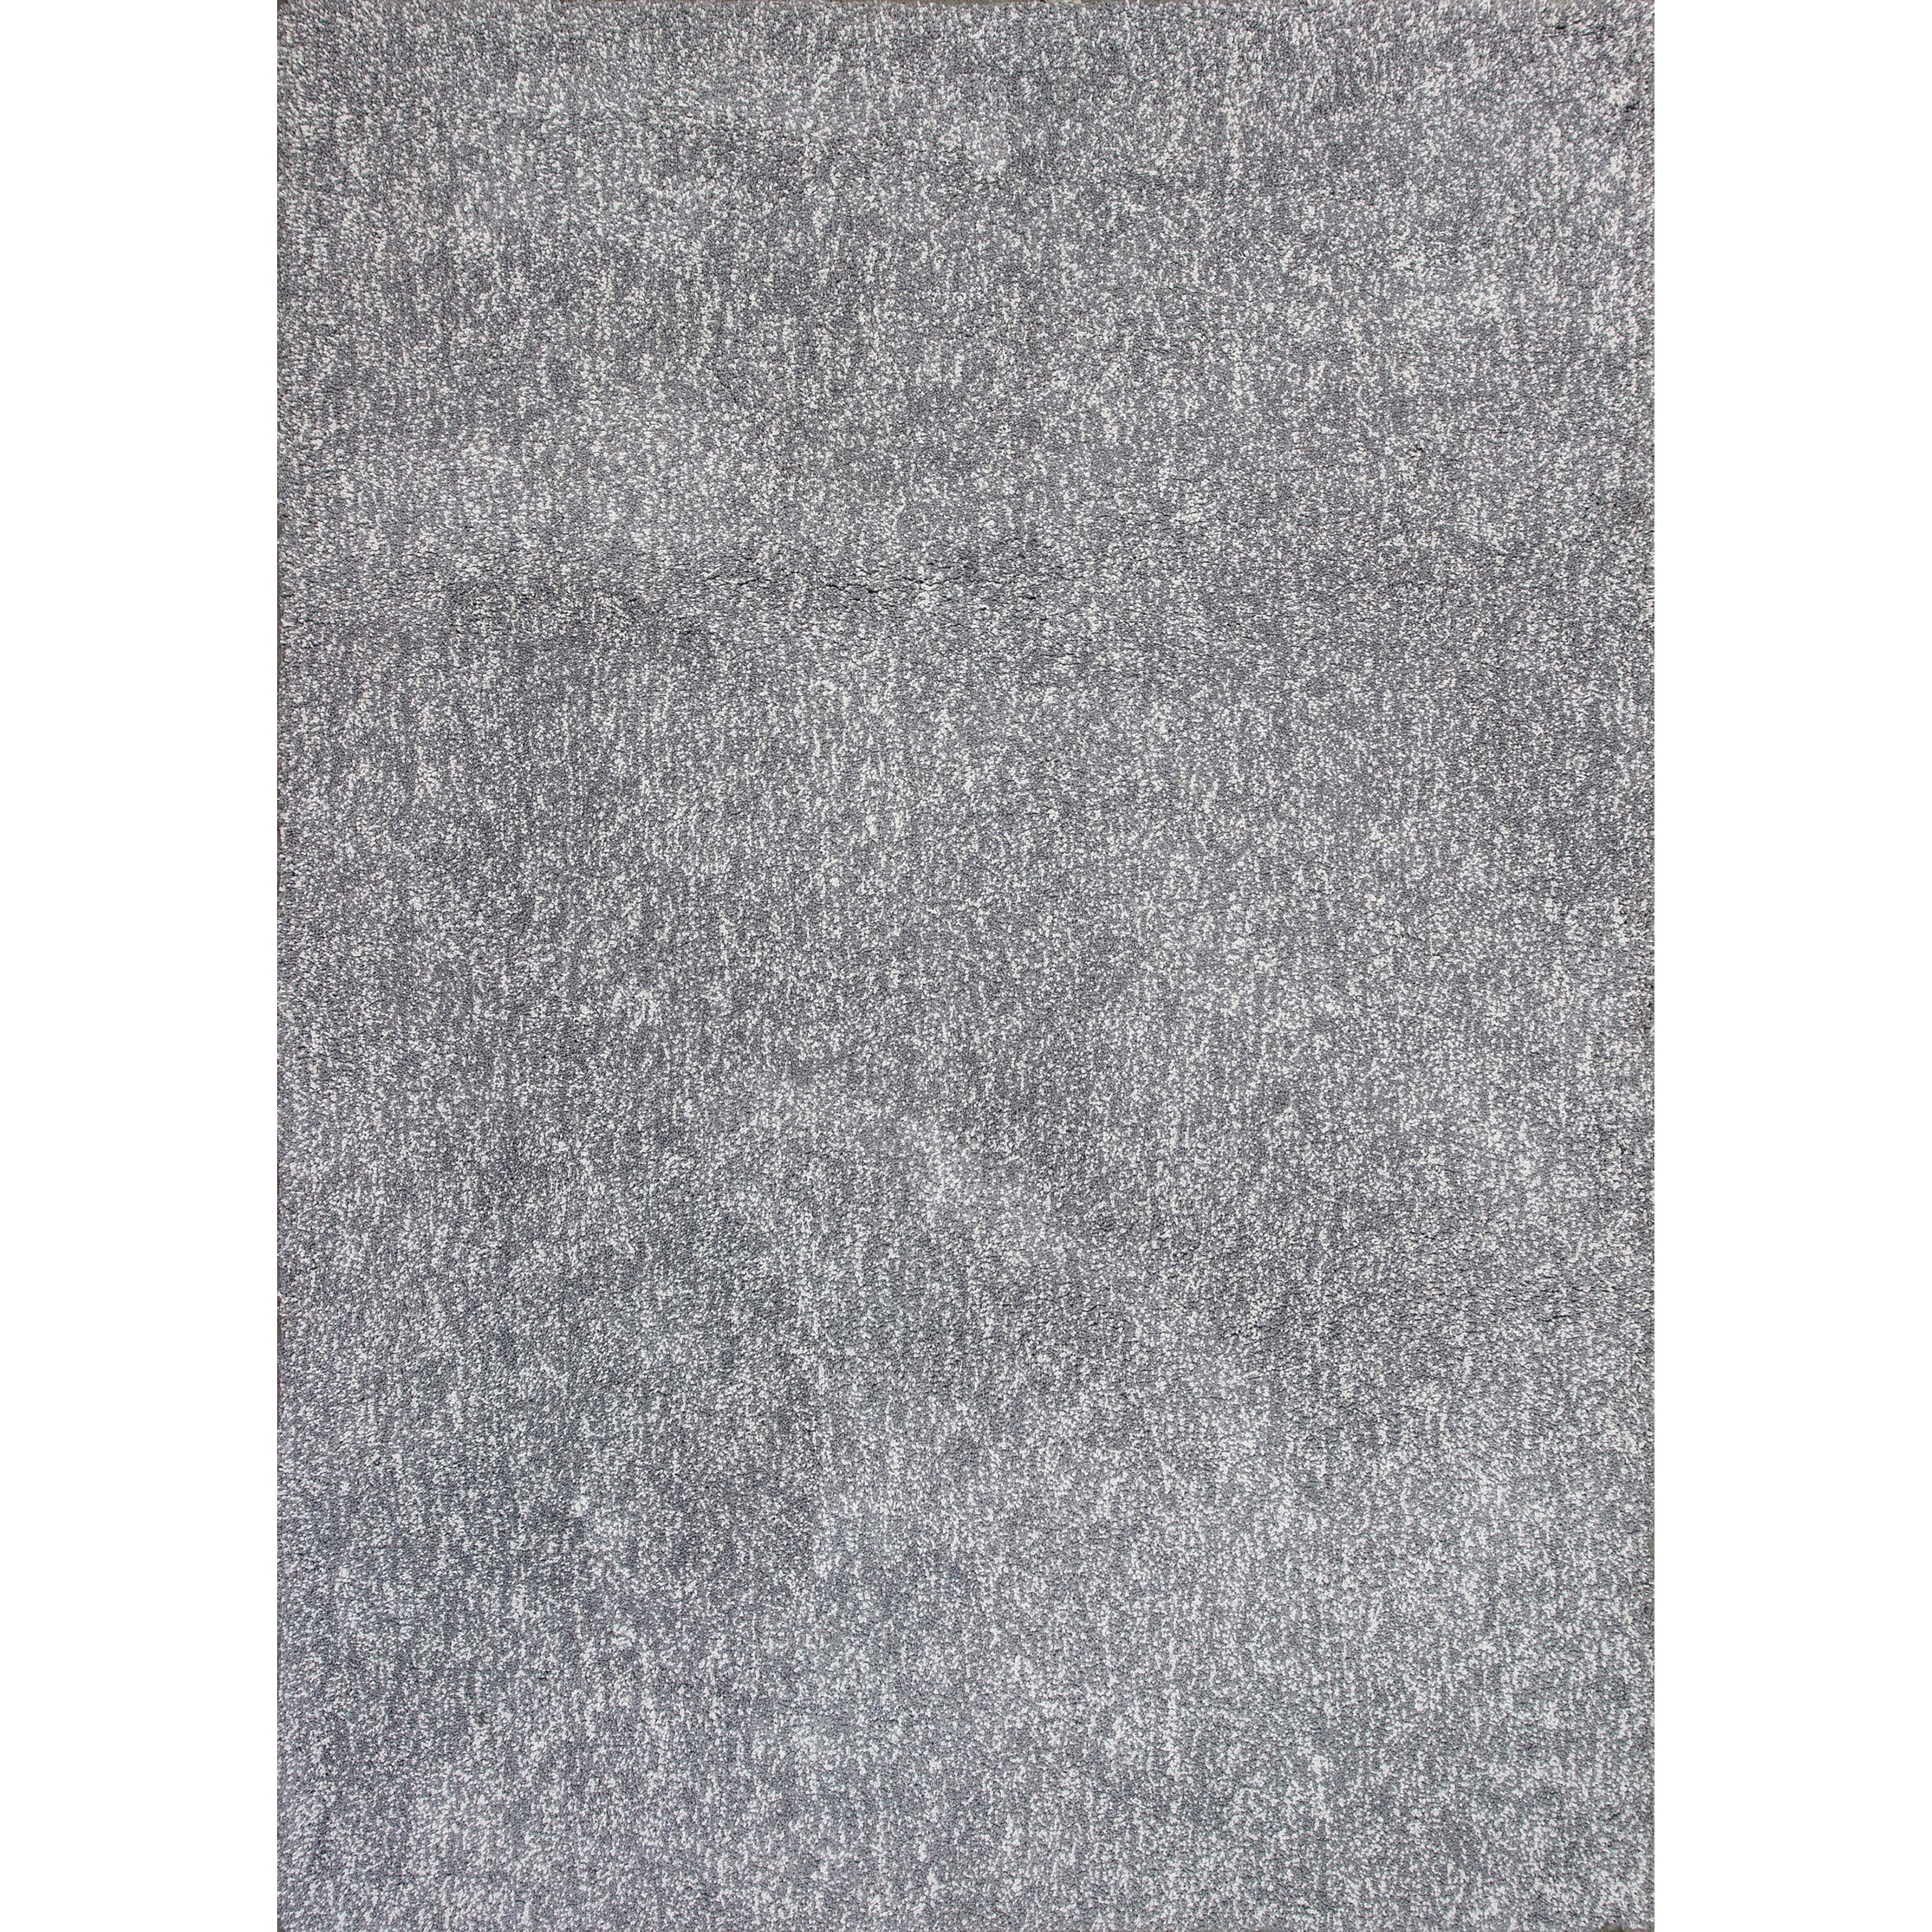 Bliss 5' X 7' Grey Heather Shag Area Rug by Kas at Zak's Home